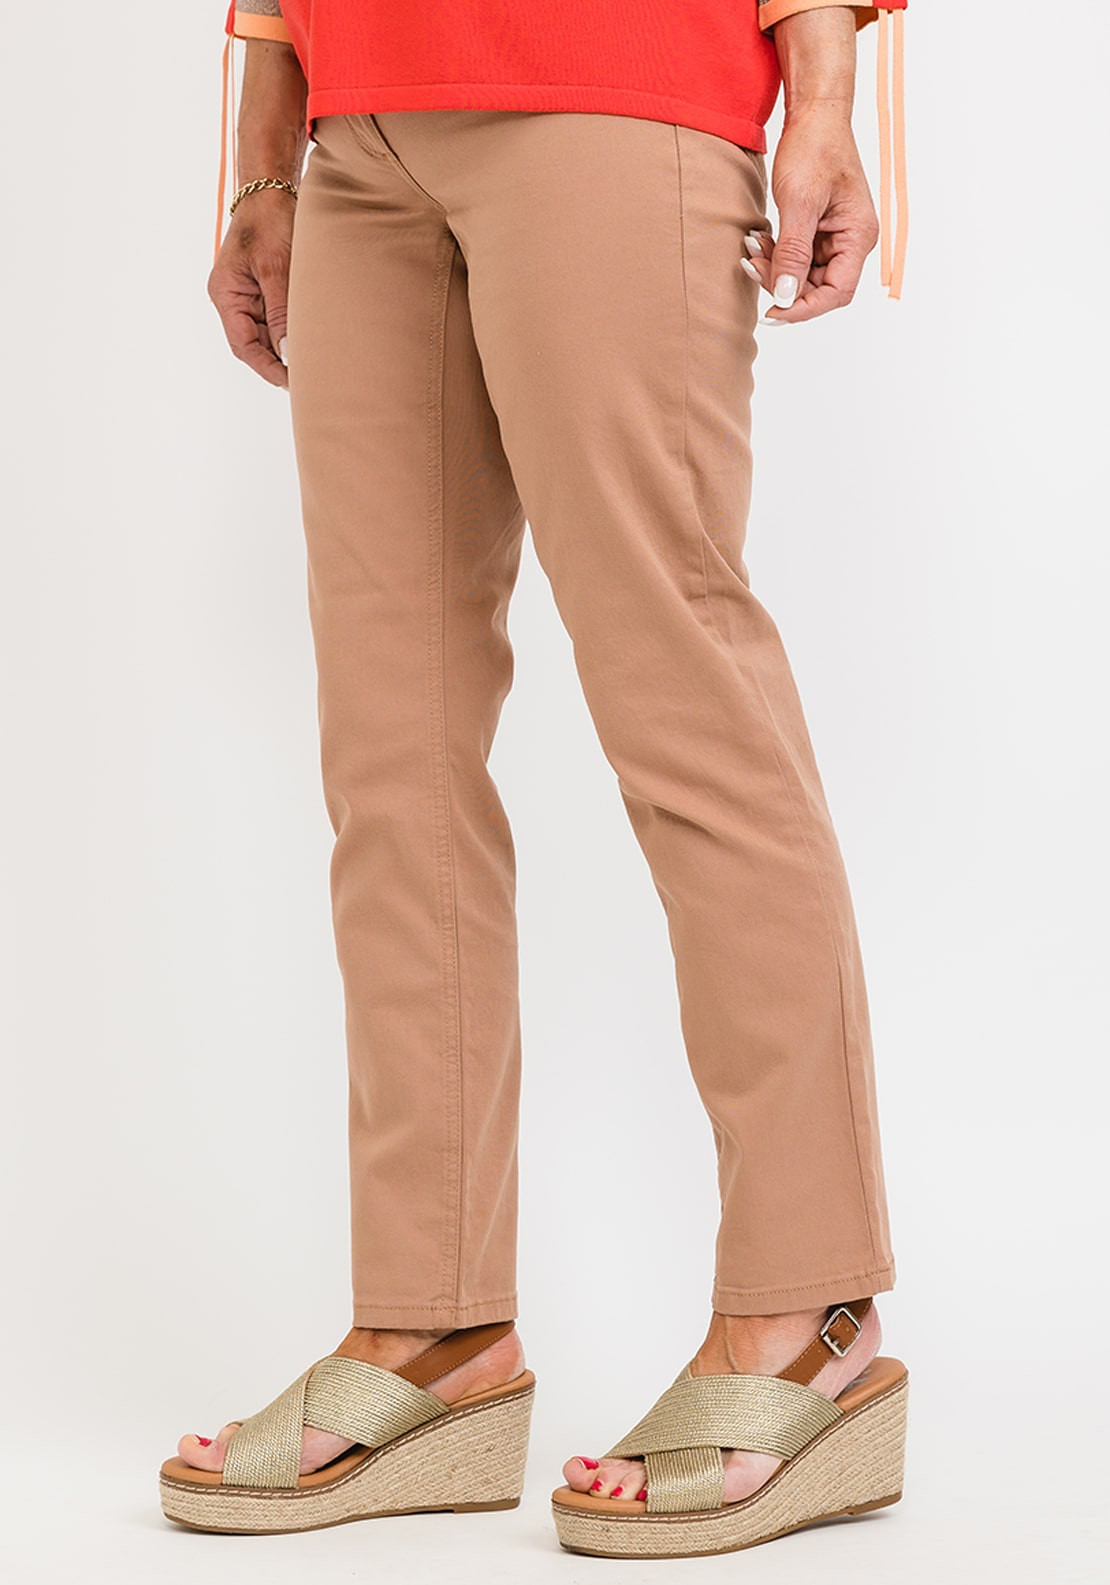 Betty Barclay Slim Fit Jeans, Brown